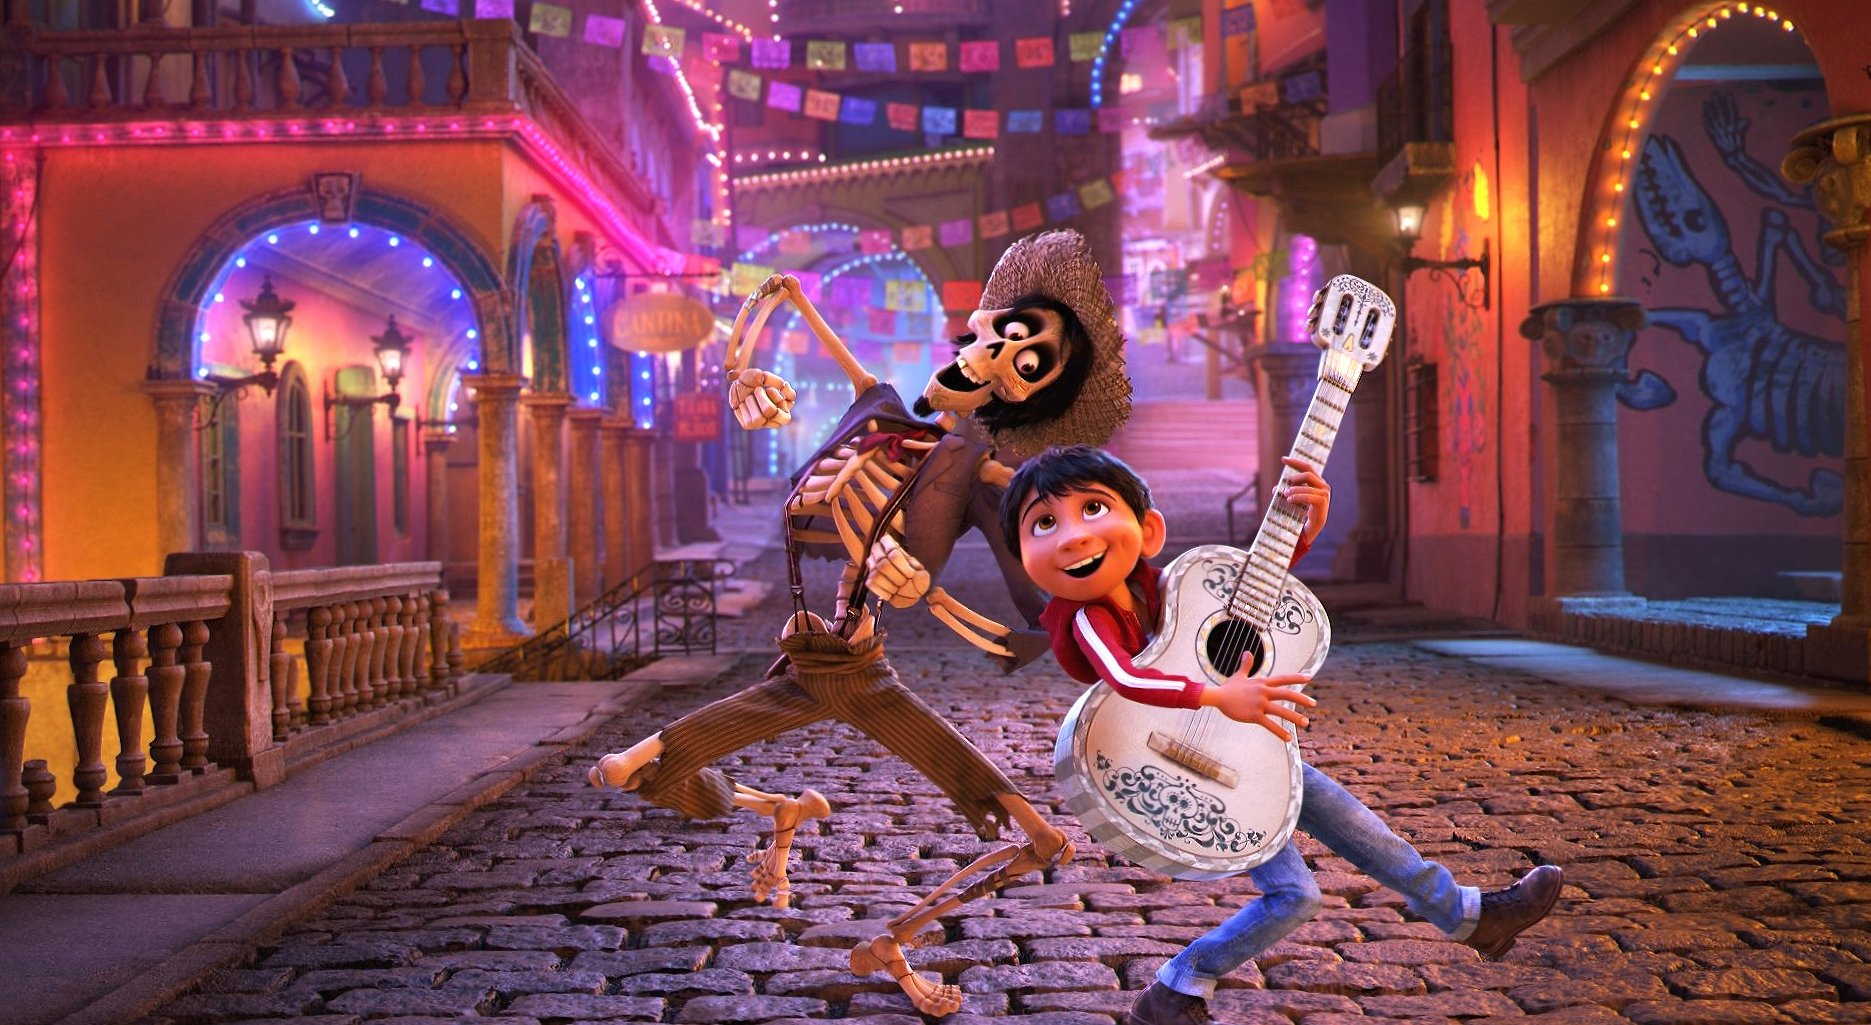 Coco at 1024 x 1024 iPad size wallpapers HD quality